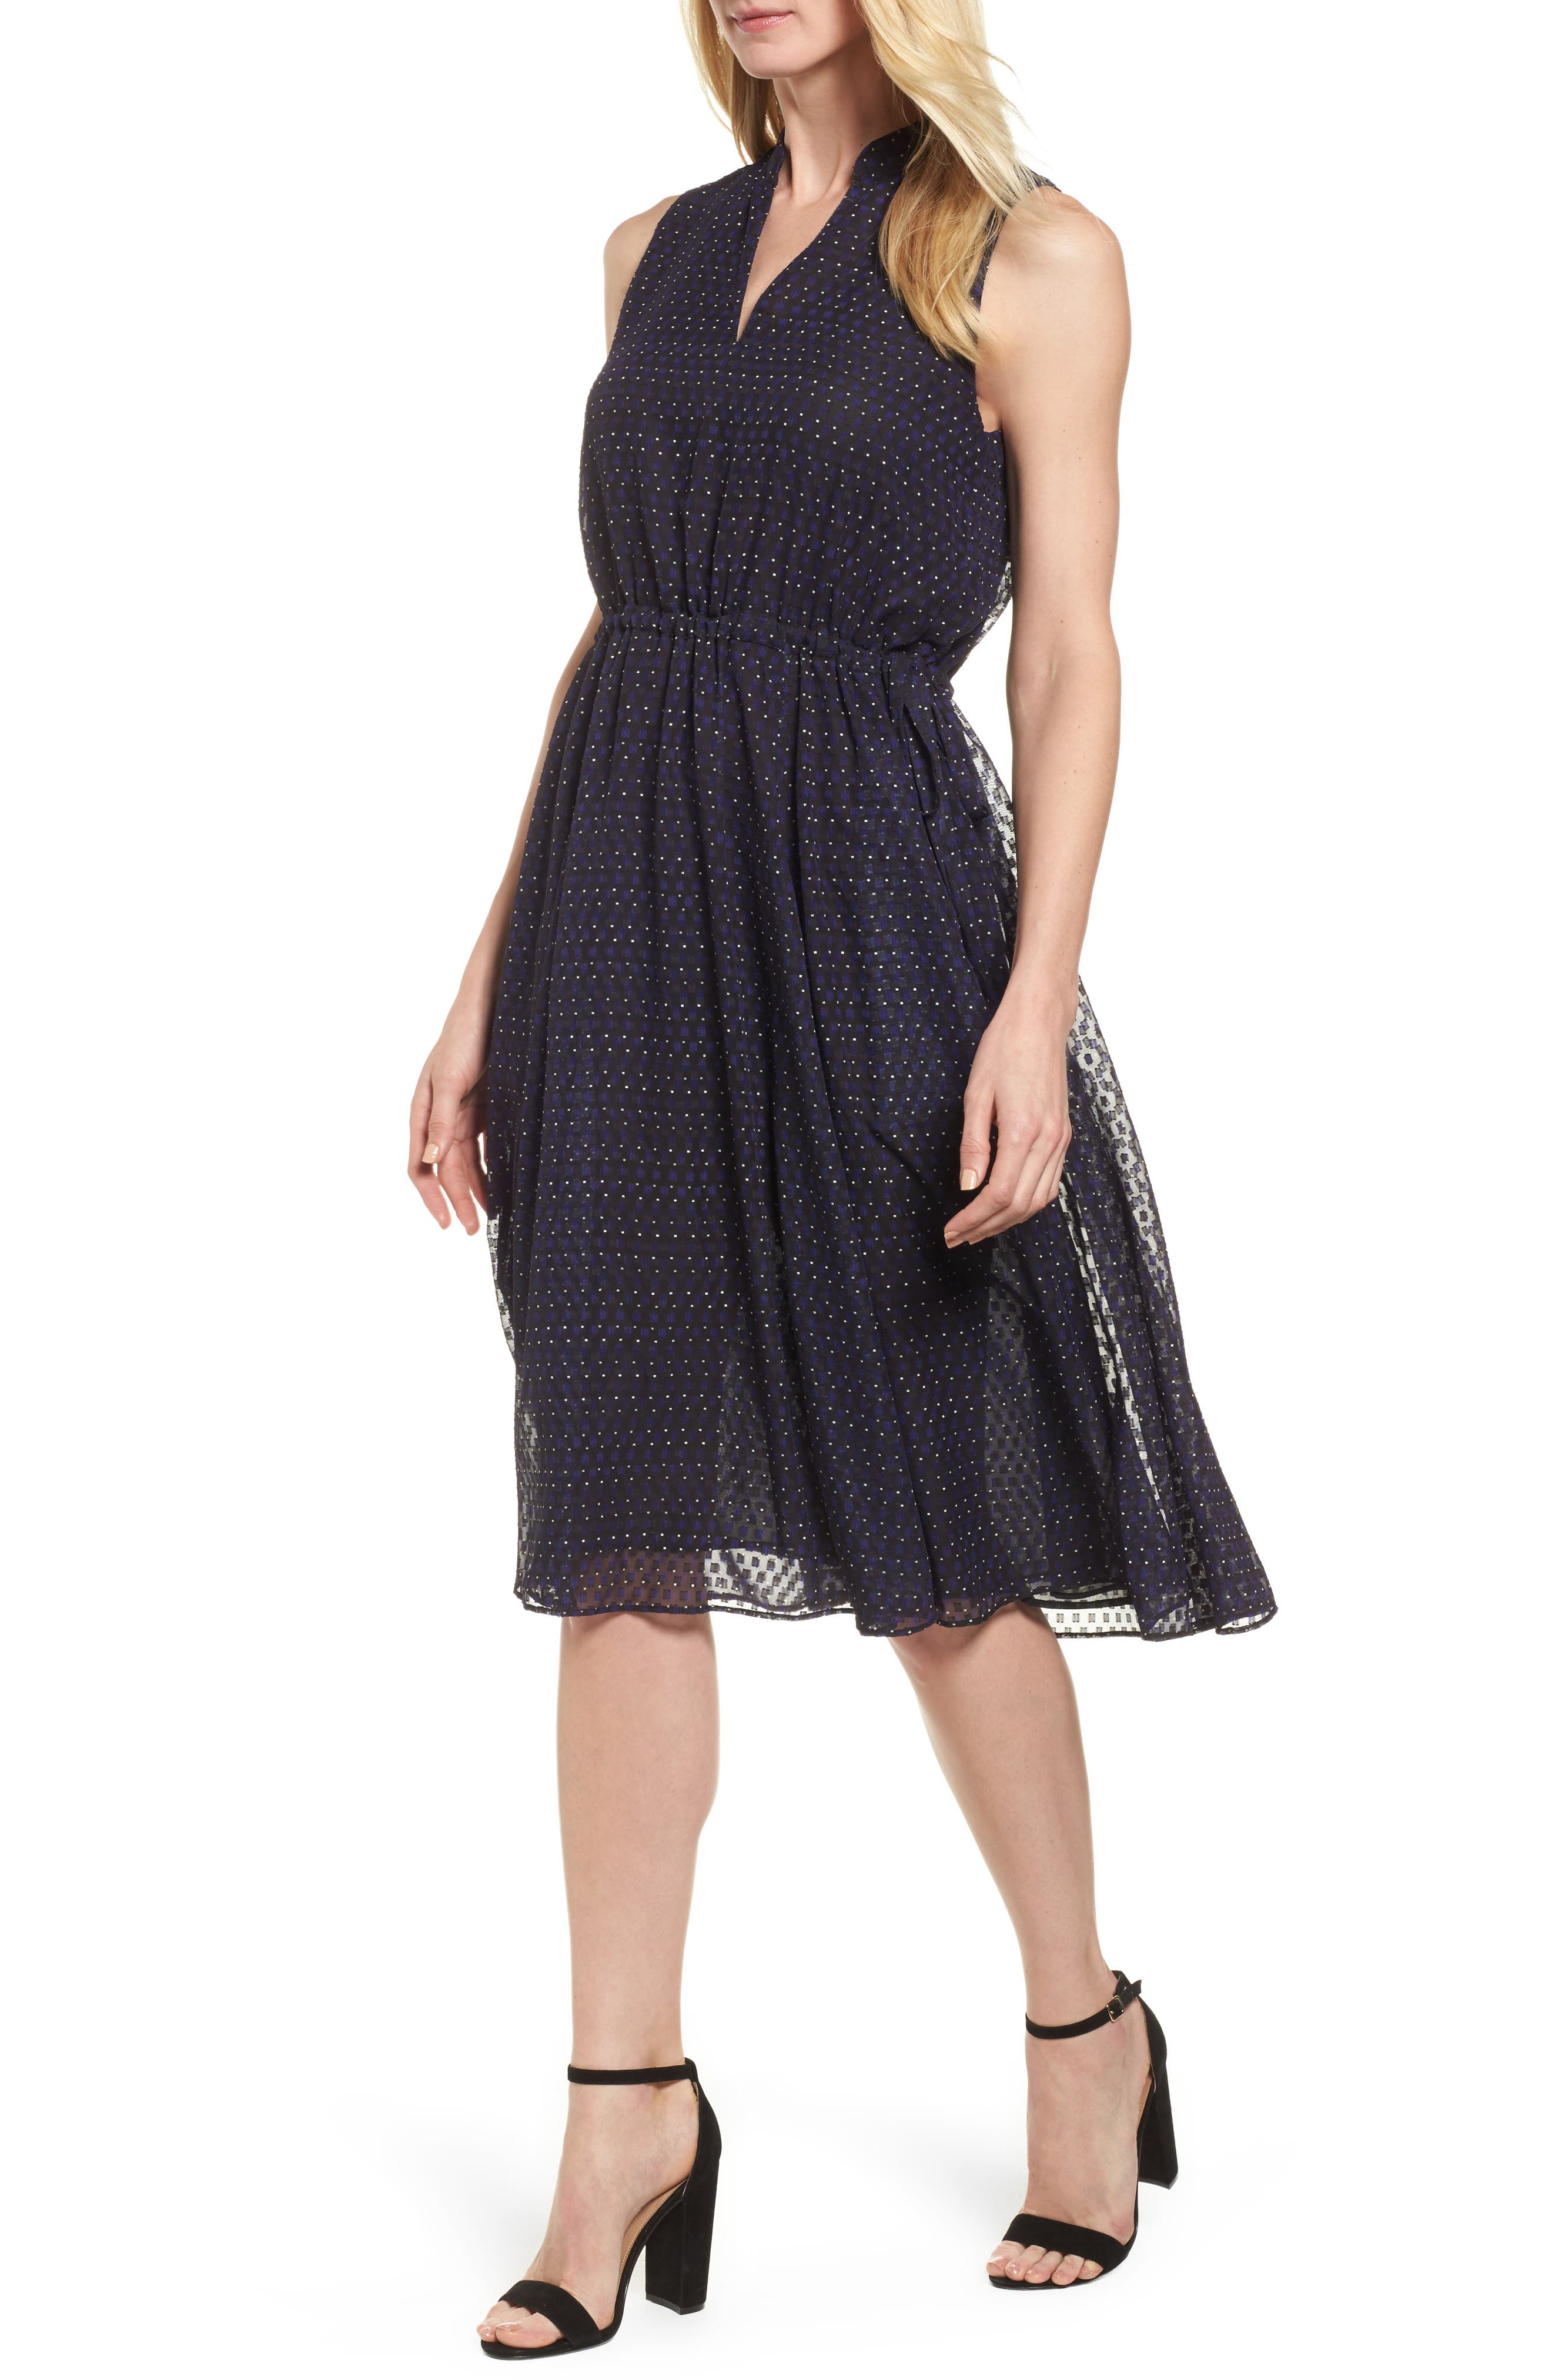 Alternate Image 1 Selected - Anne Klein Print A-Line Dress